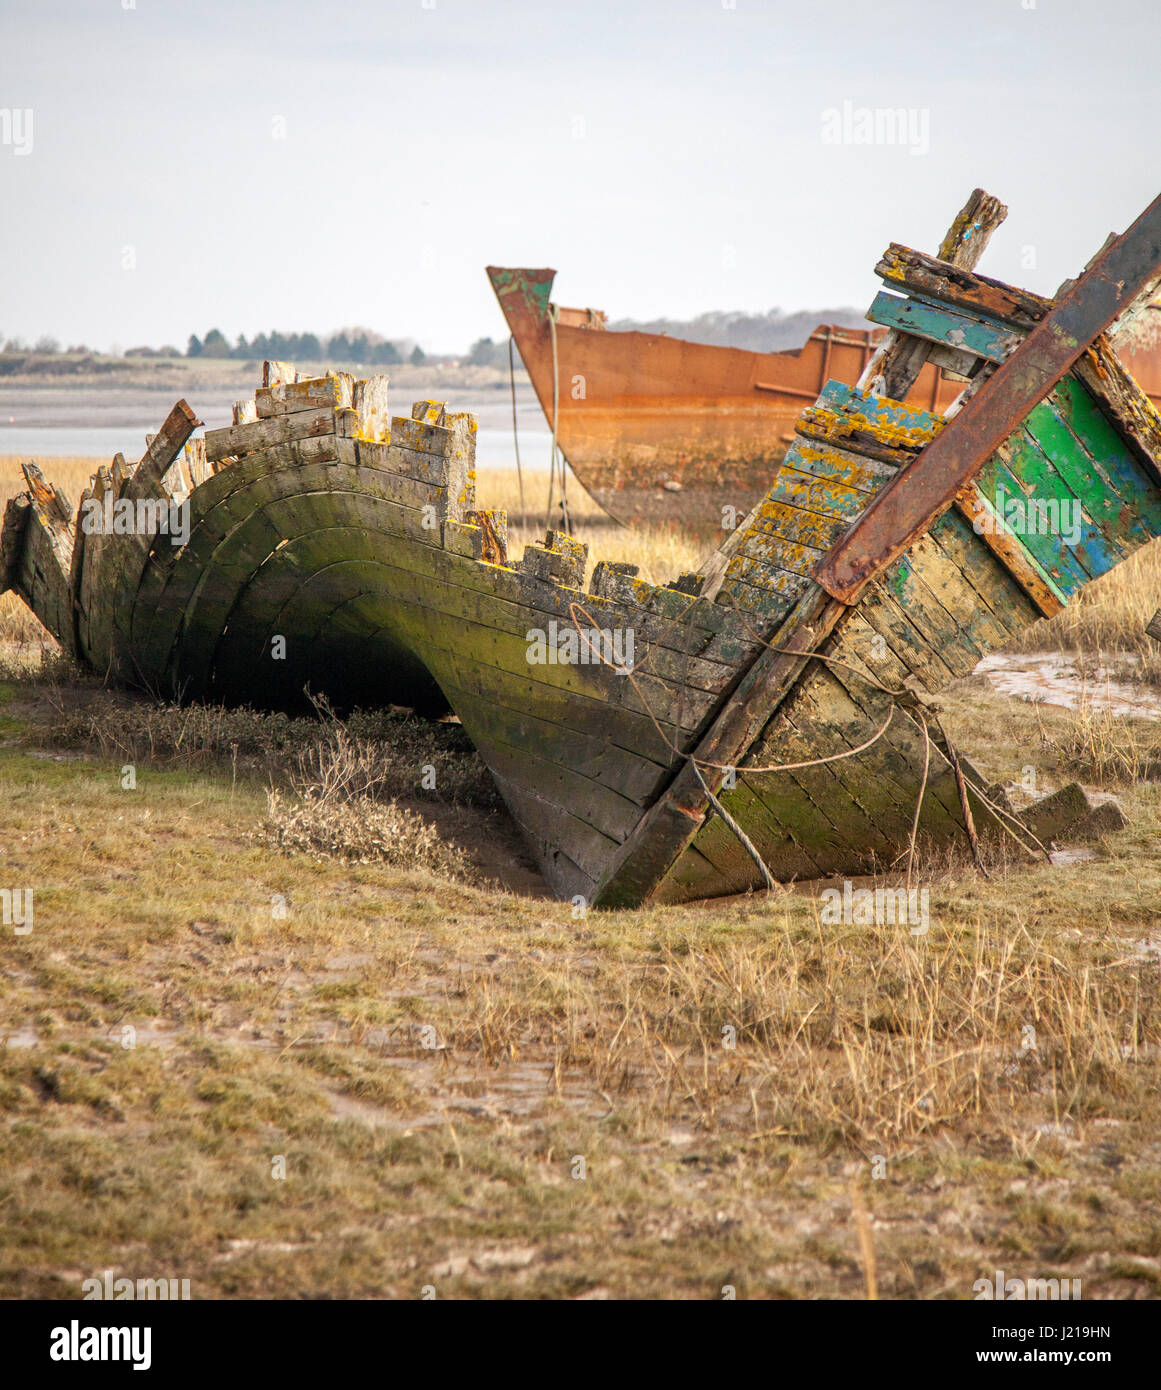 a warped and contorted wreck of the wyre estuary, Lancashire UK - Stock Image